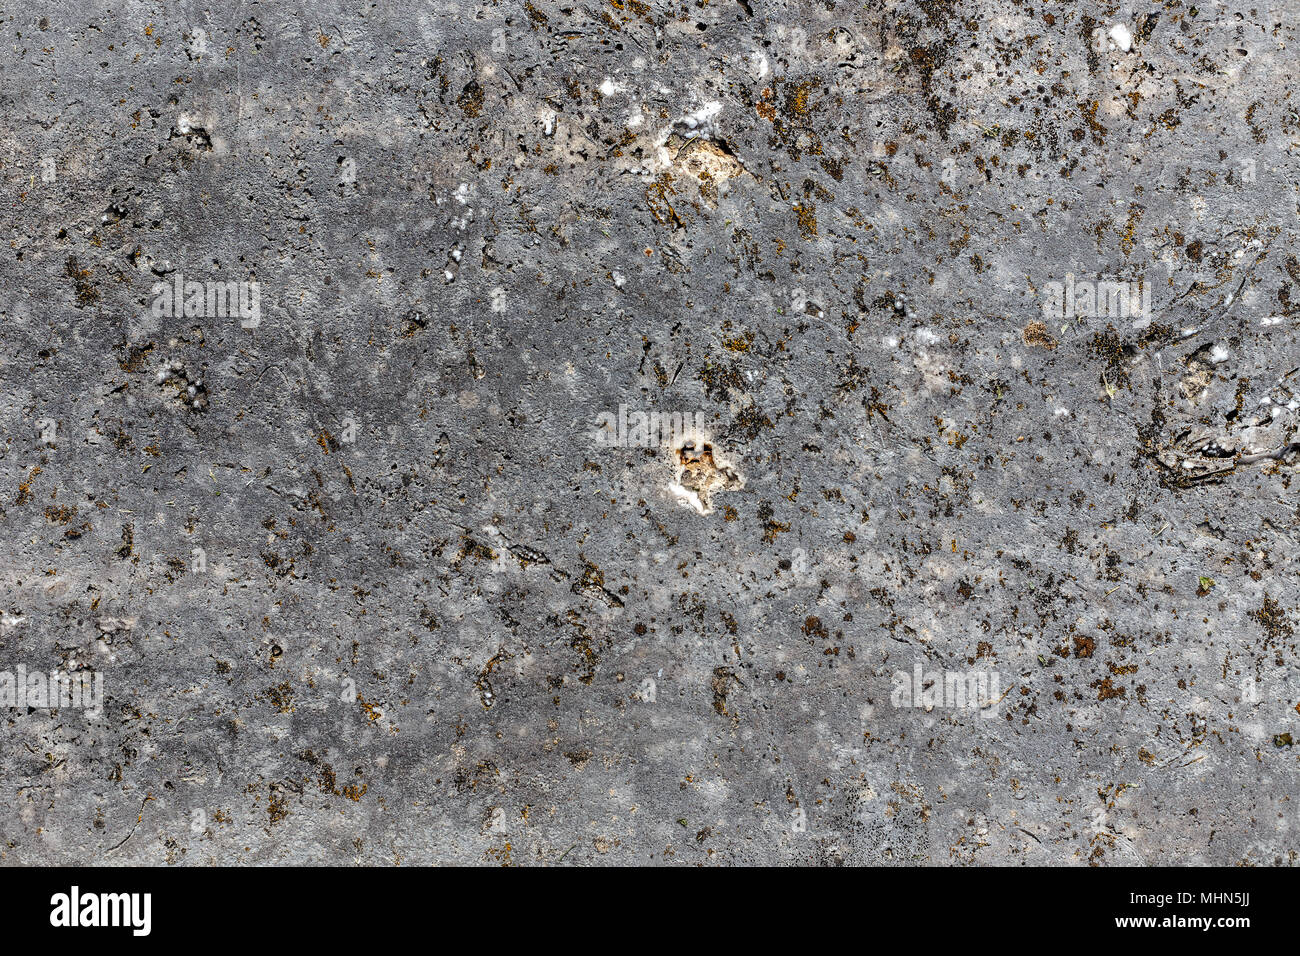 Outdoor polished rock texture, stone floor texture background - Stock Image